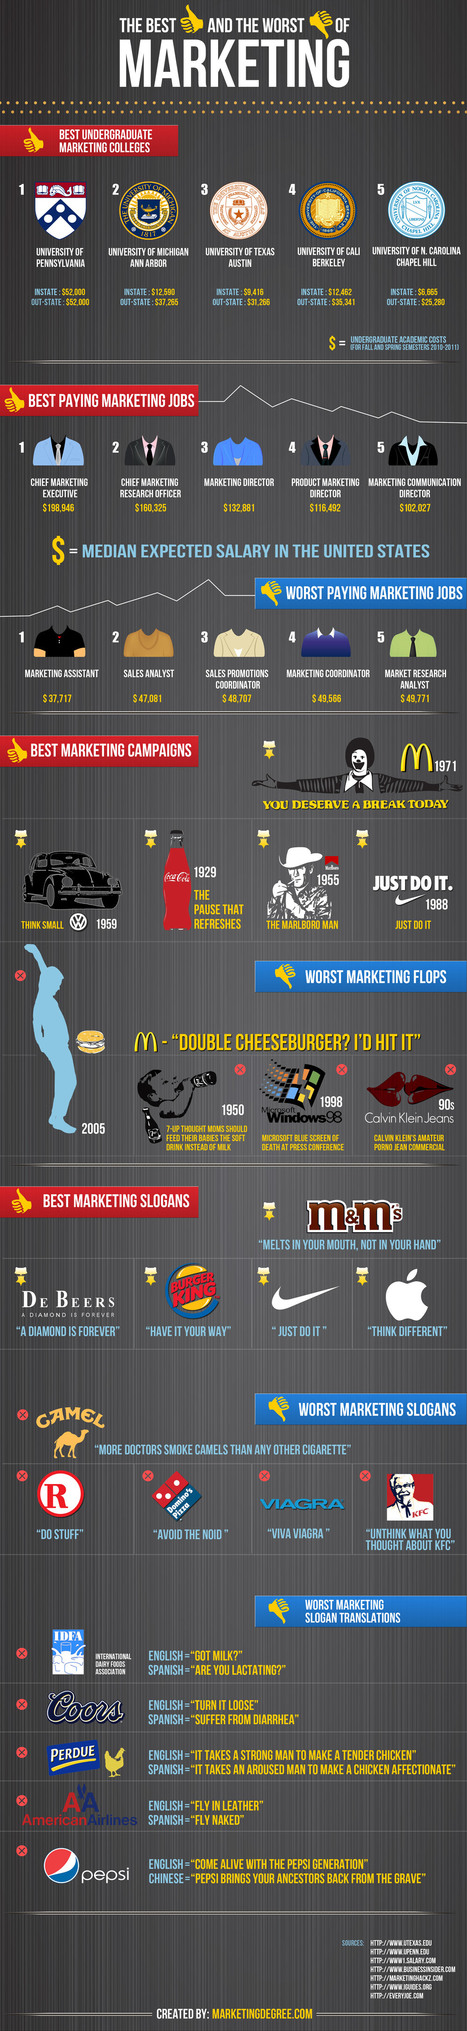 The Best and Worst of Marketing | Infographics | Scoop.it